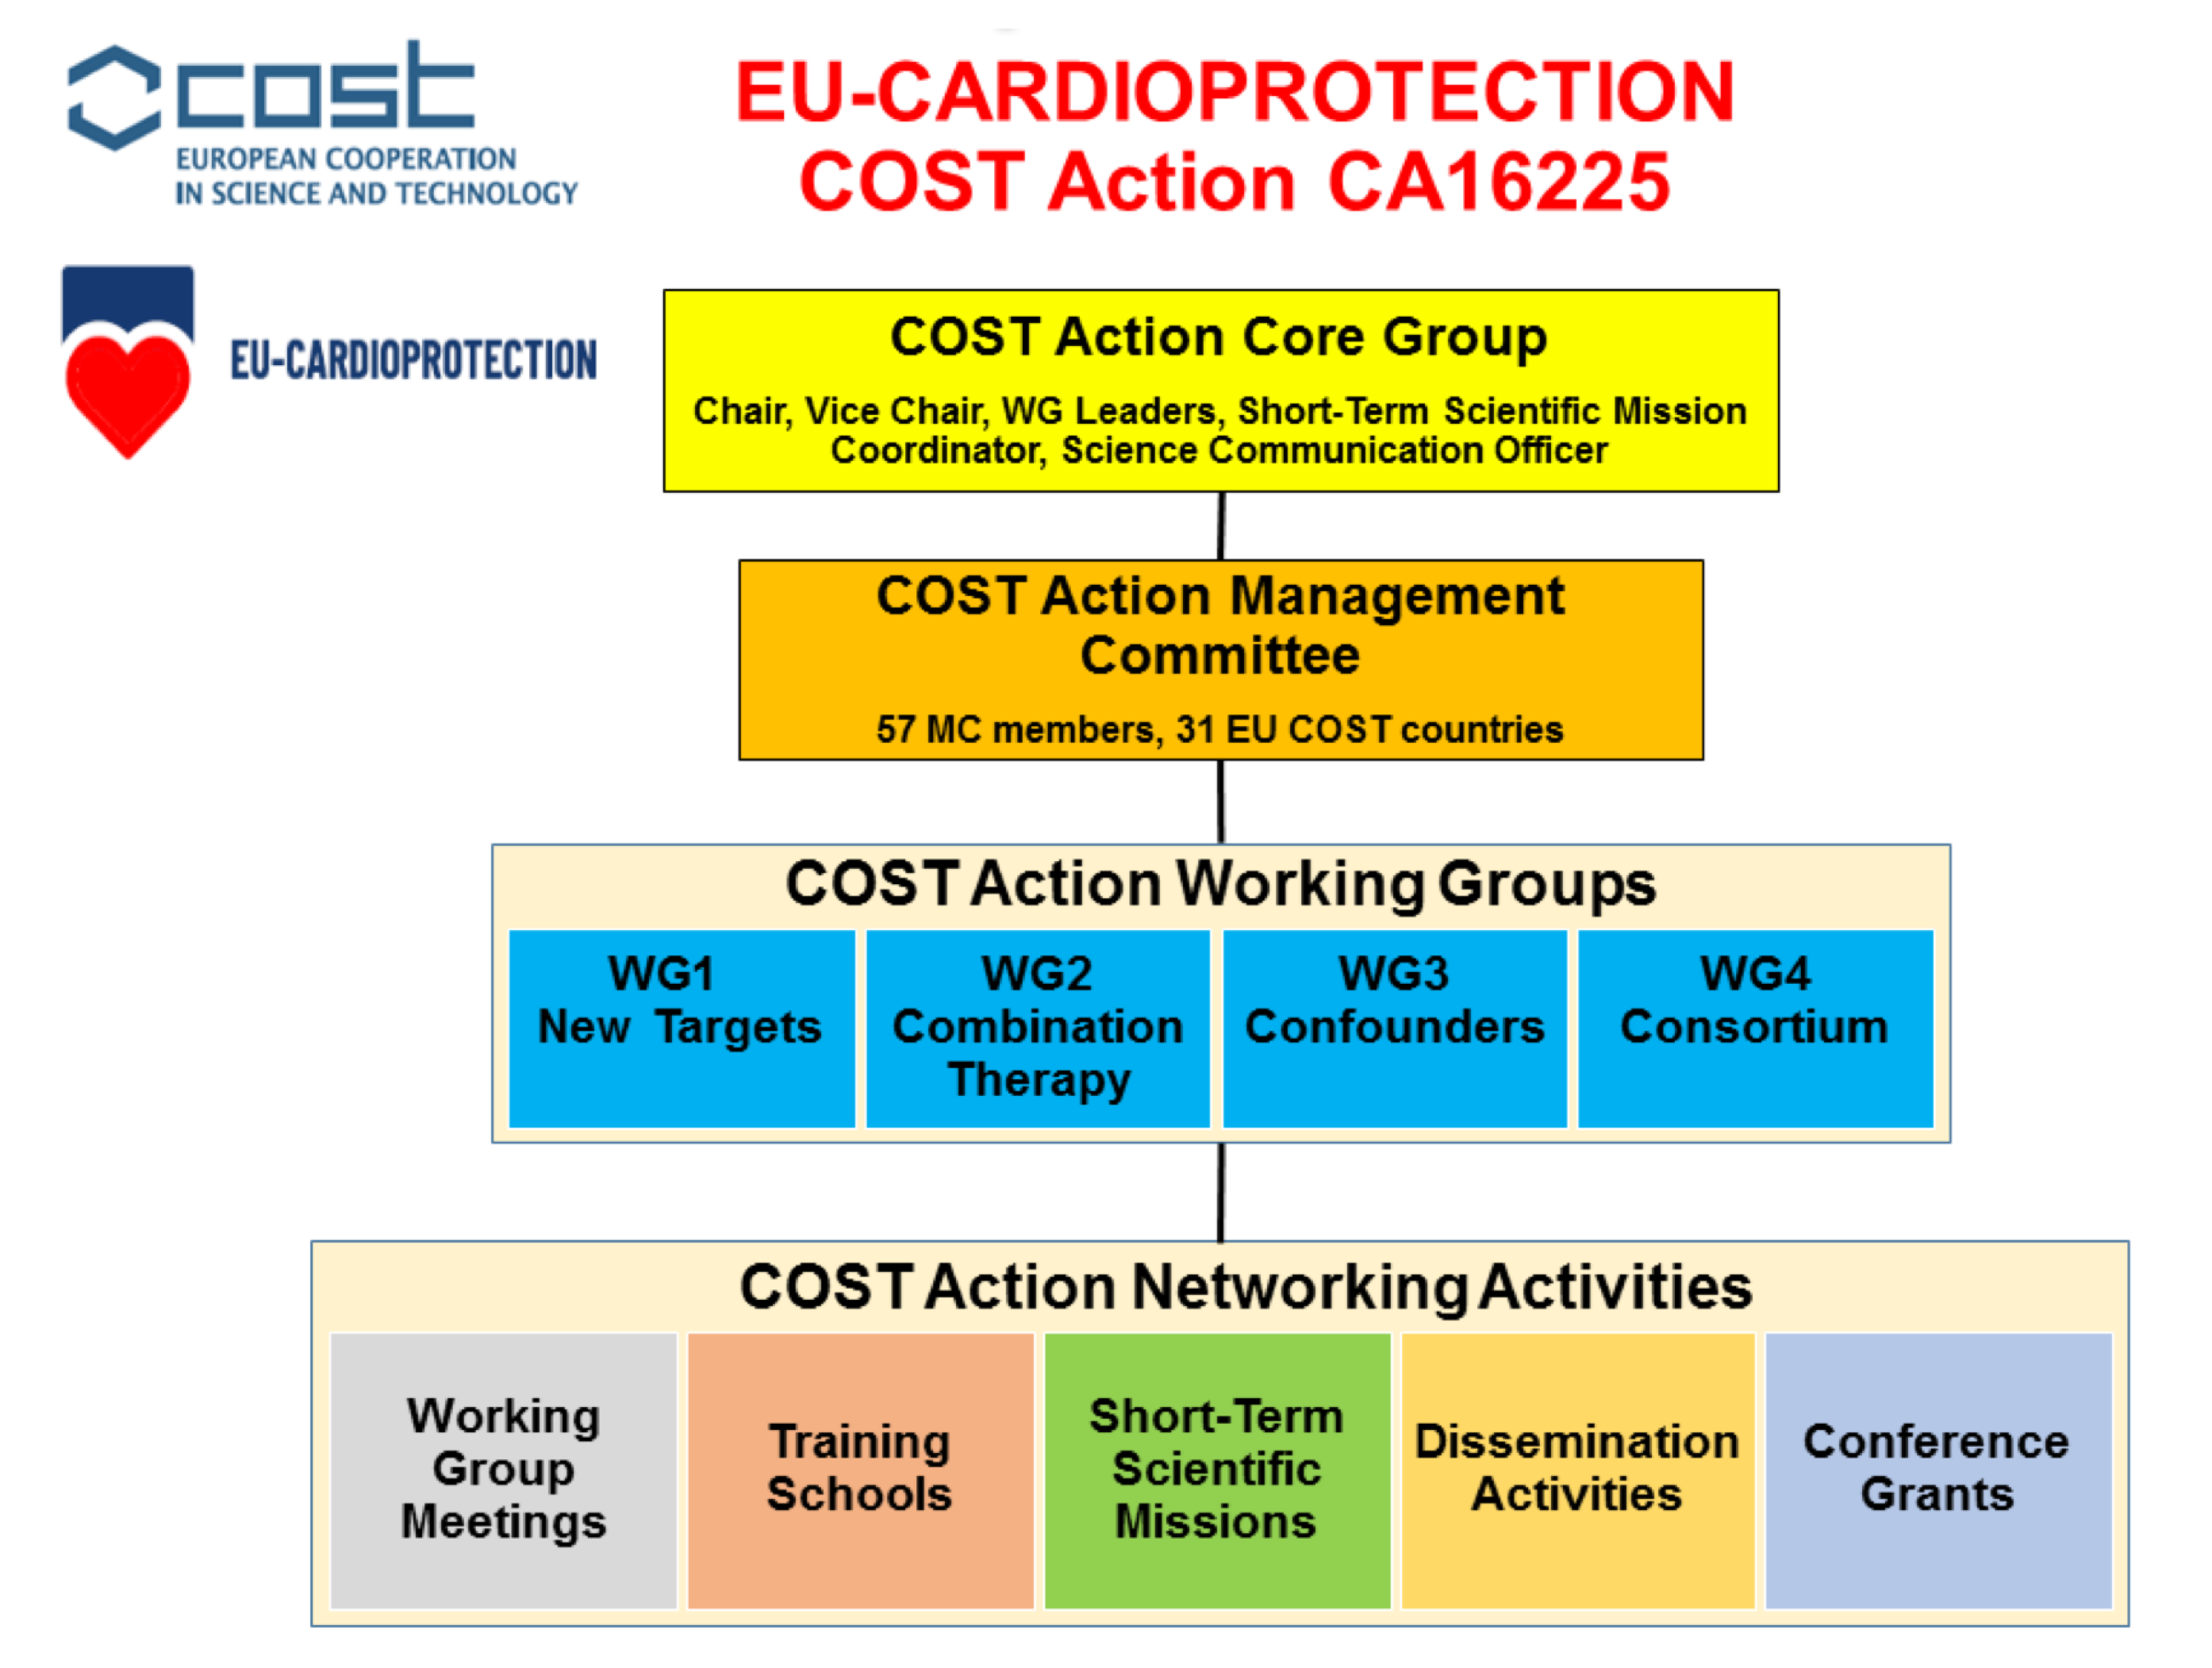 Realizing the therapeutic potential of novel cardioprotective therapies: The EU-CARDIOPROTECTION COST Action – CA16225